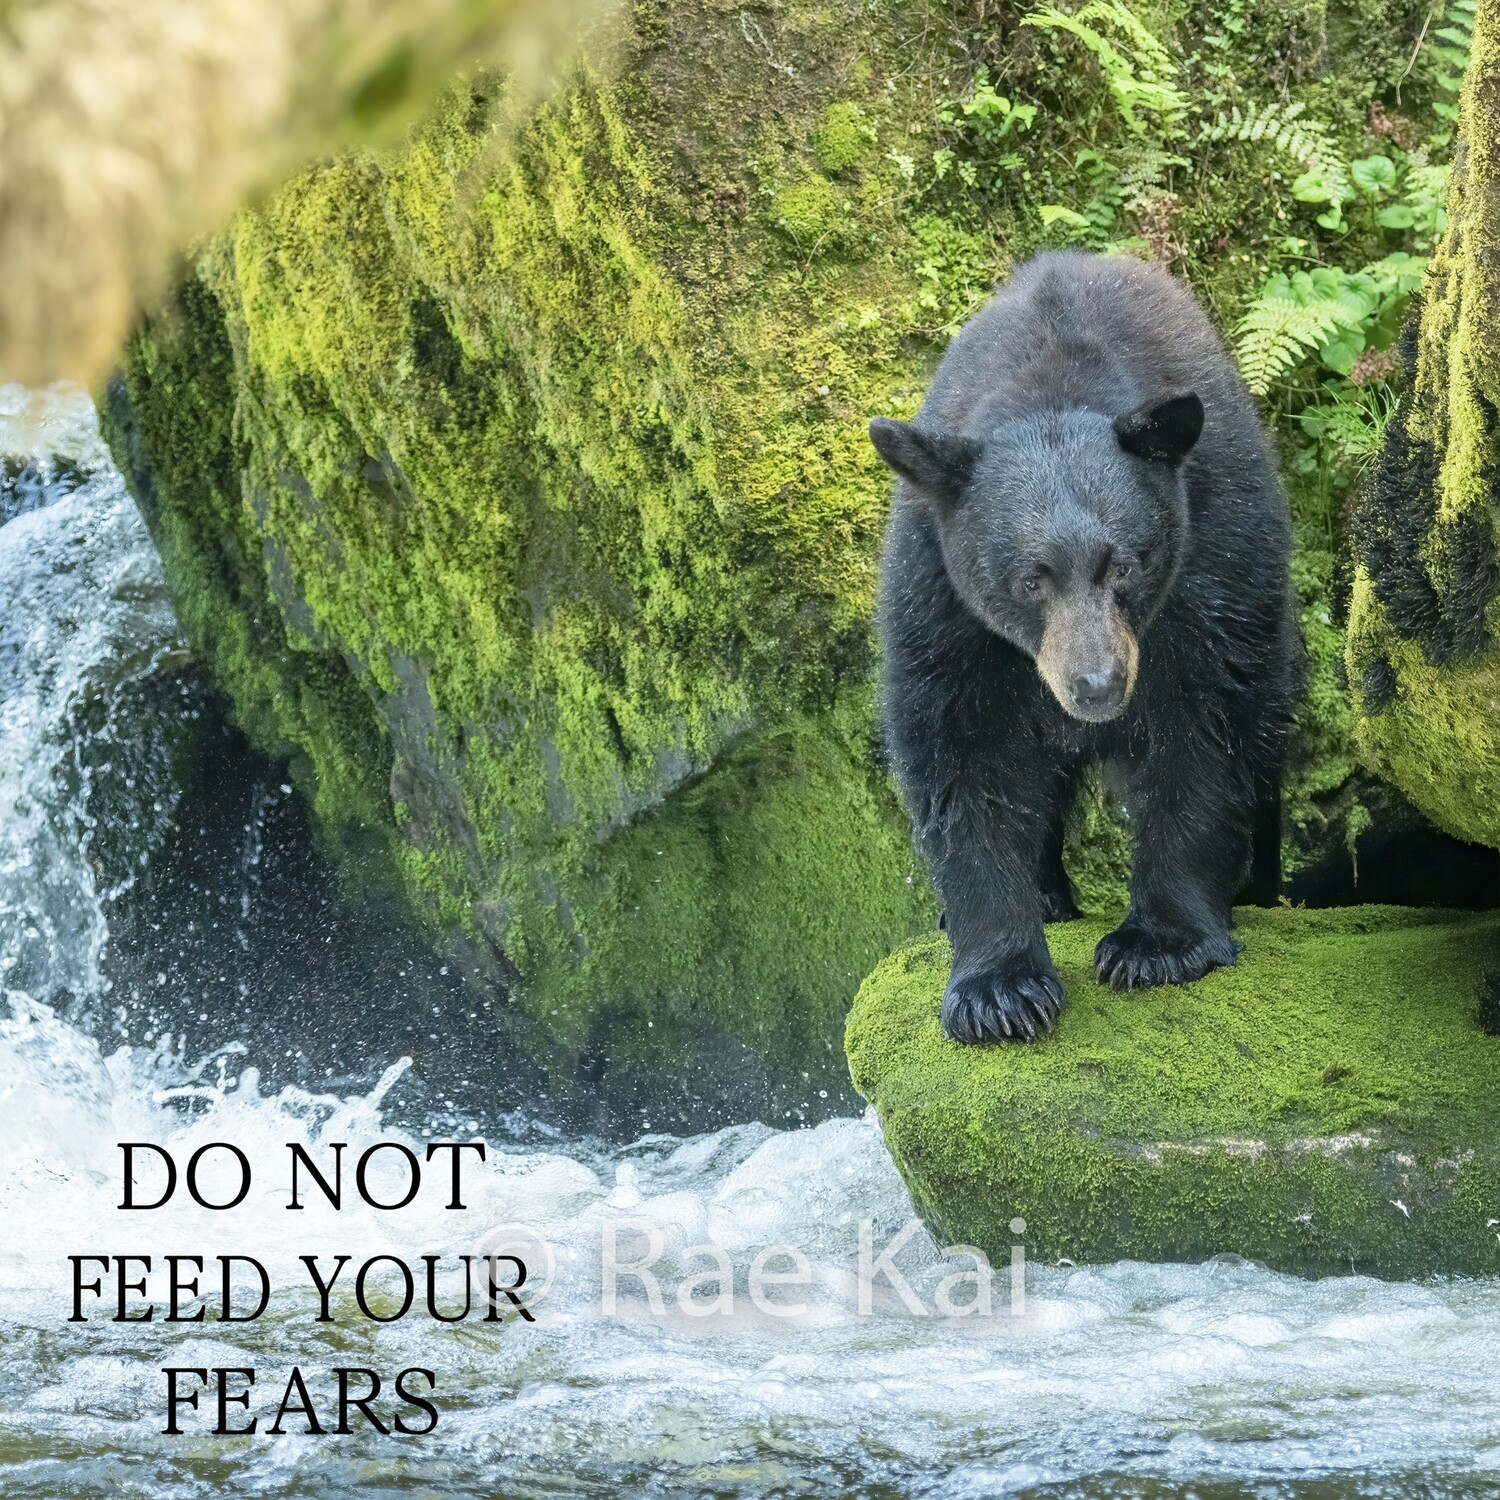 Do Not Feed Your Fears-Inspirational Square Photo